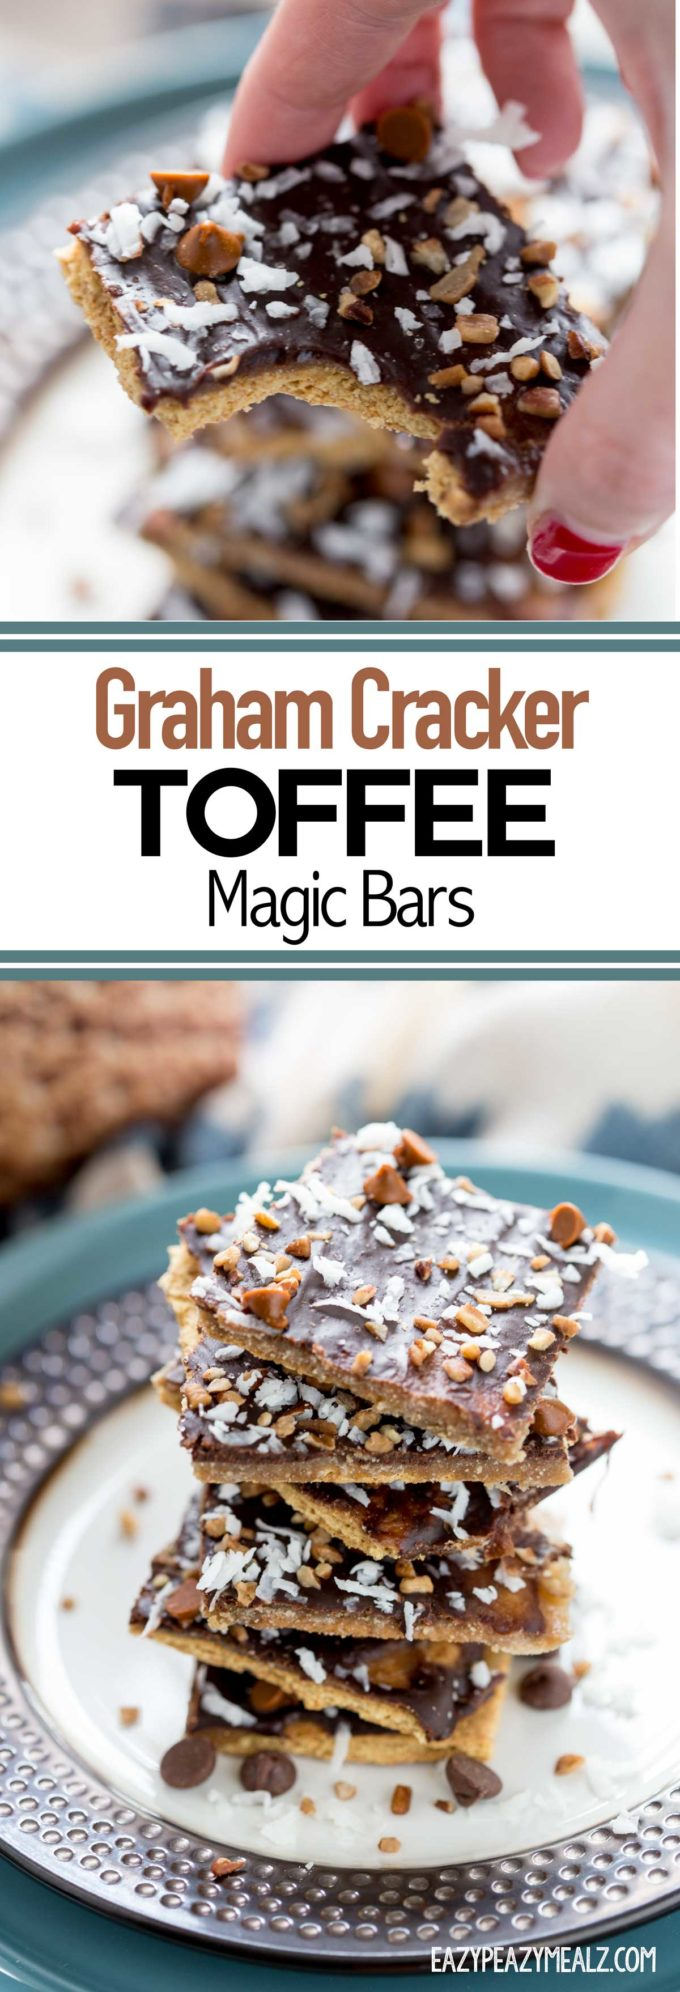 Graham Cracker Toffee Magic Bars are like the perfect mix between graham crackers, toffee, and magic bars. So easy to make and very delicious.